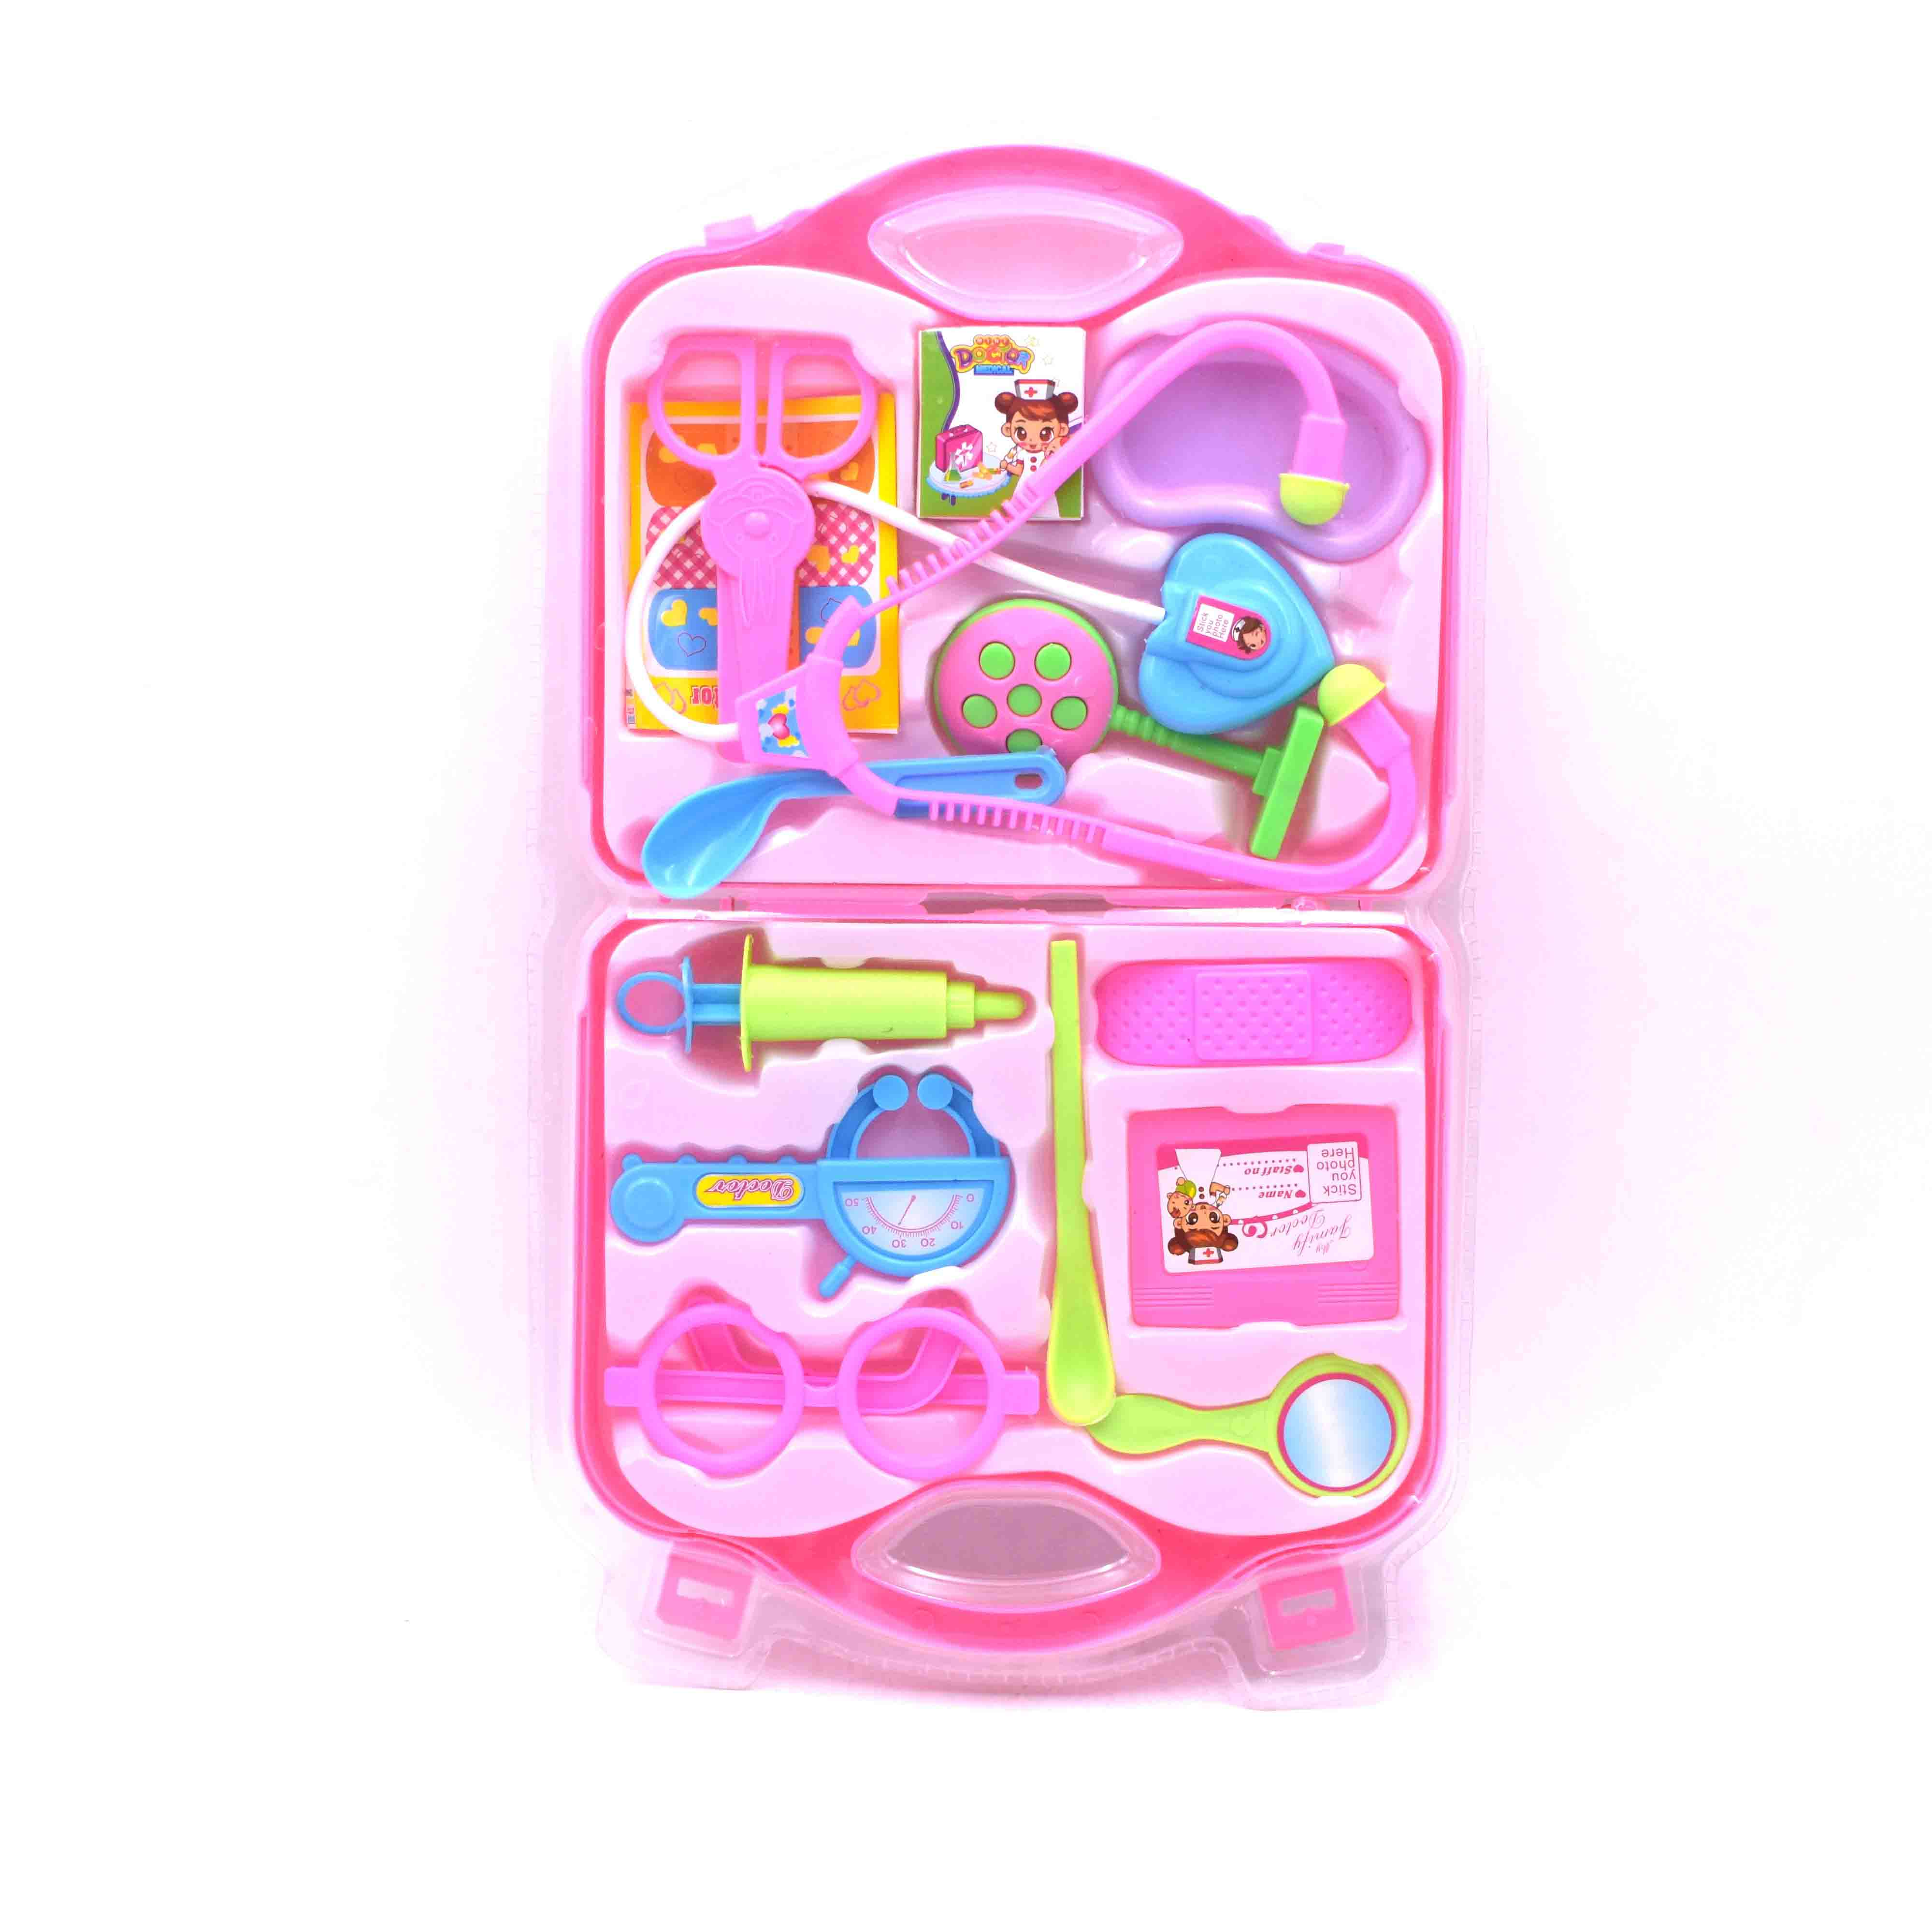 PLAY HOUSE TOYS LY3634